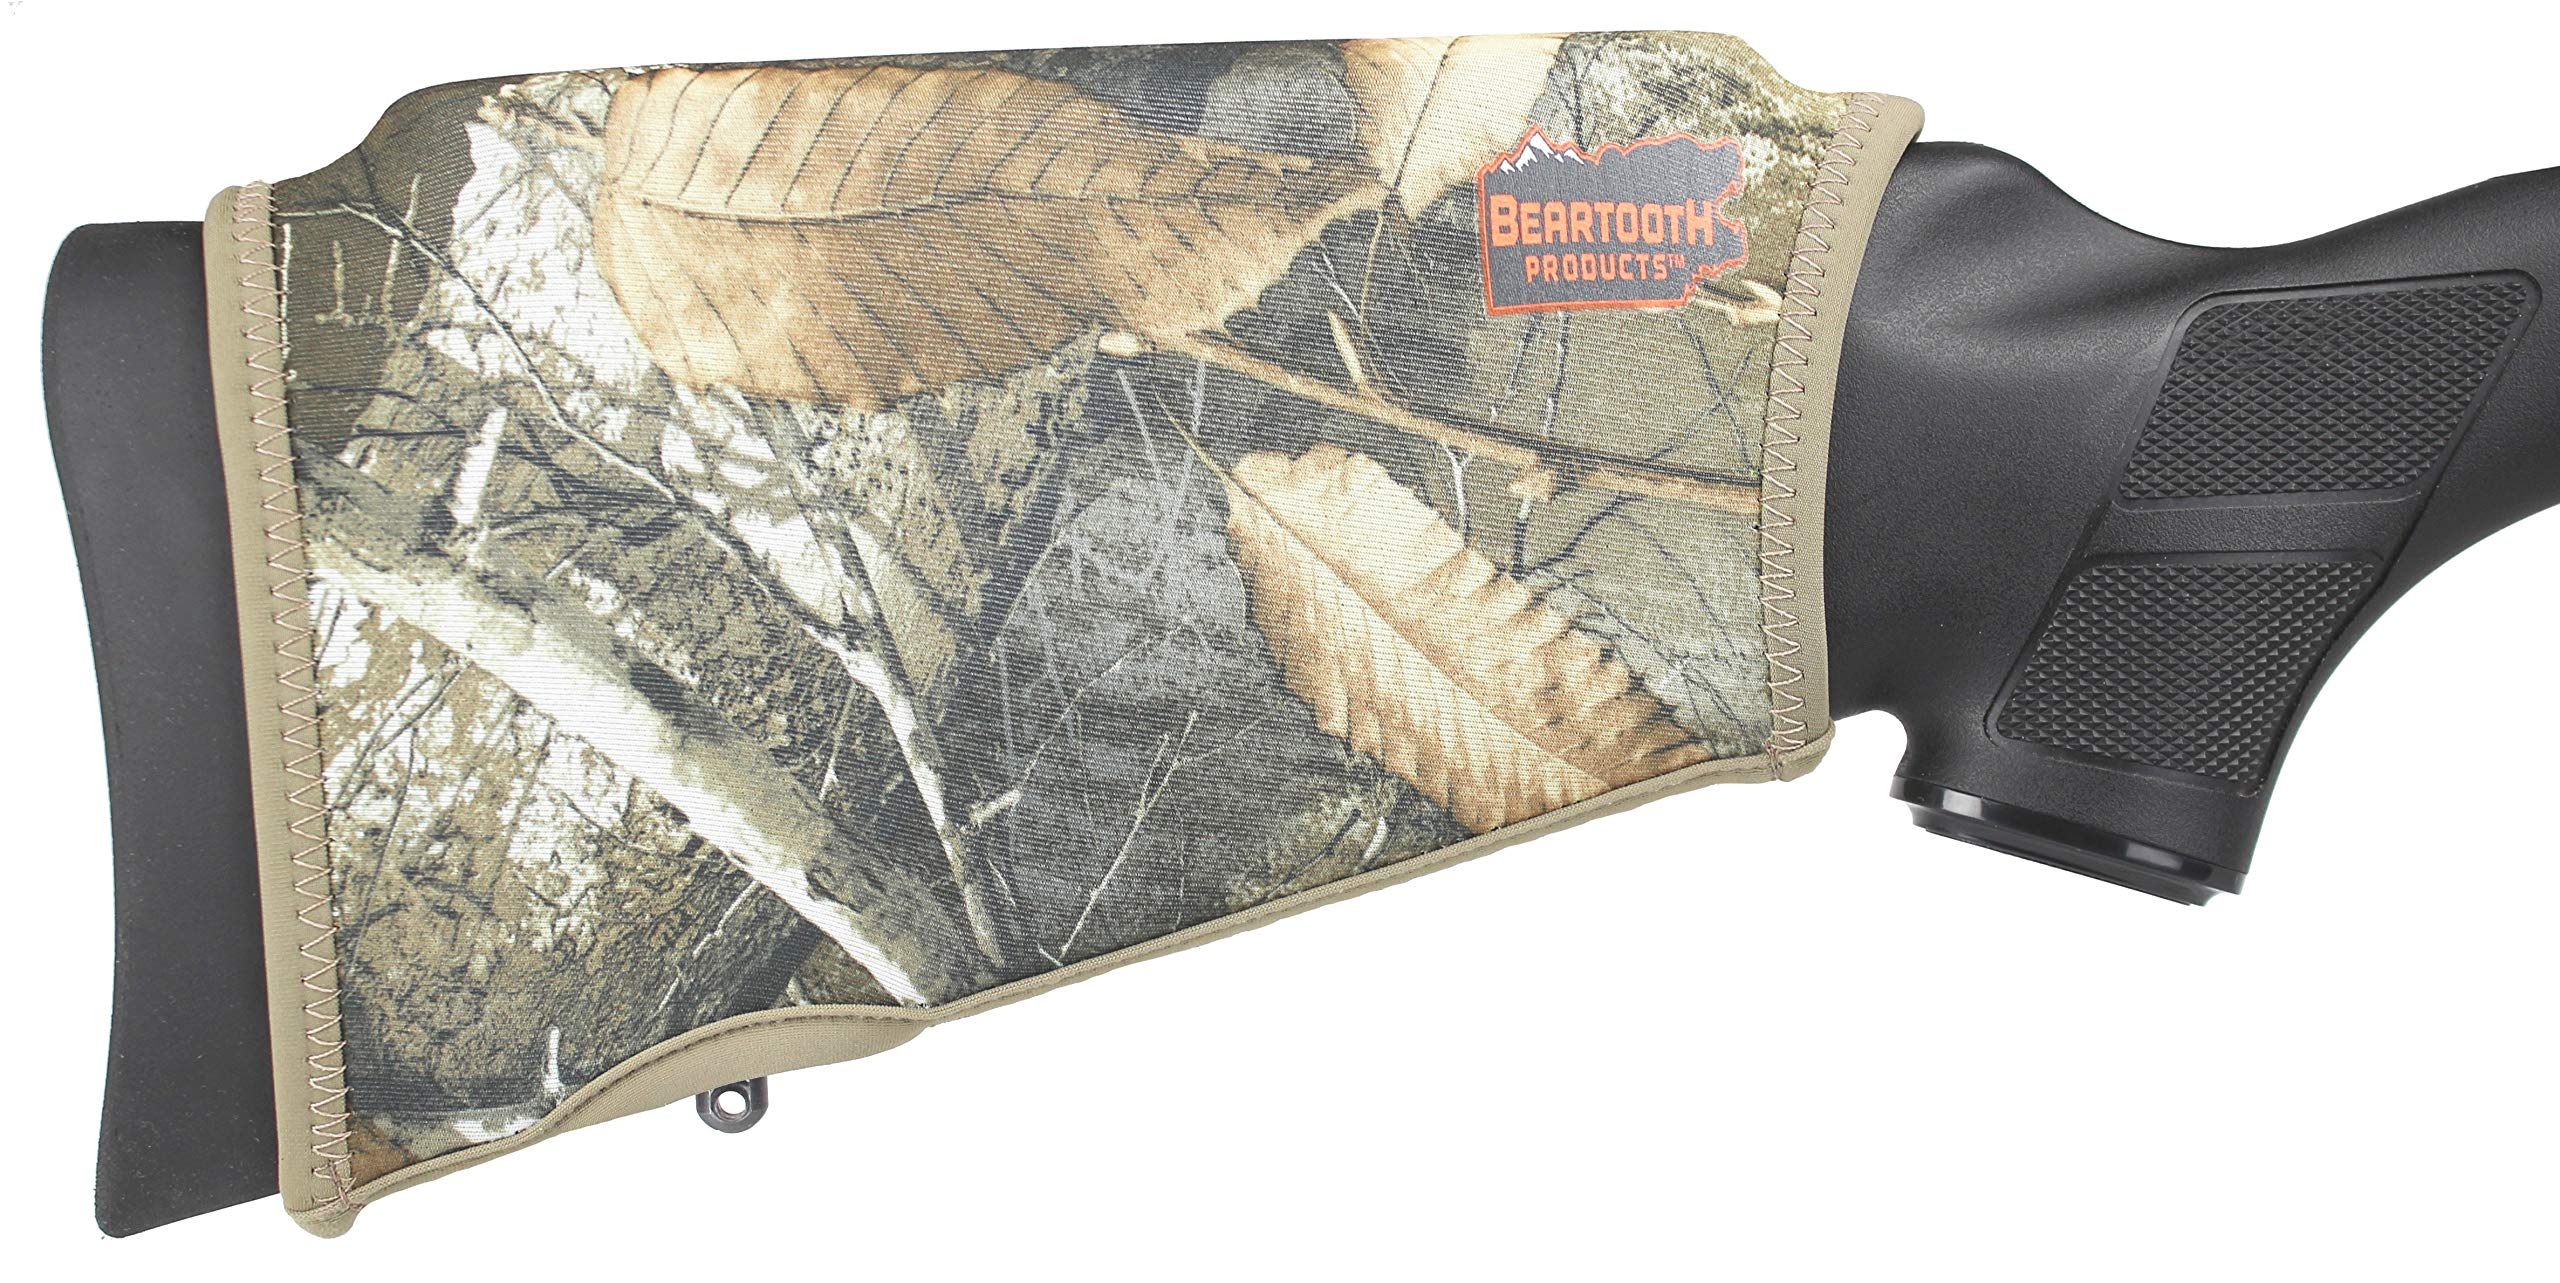 Beartooth Comb Raising Kit 2.0 - Premium Neoprene Gun Stock Cover + (5) Hi-Density Foam Inserts - NO Loops Model (Realtree Edge) by Beartooth Products